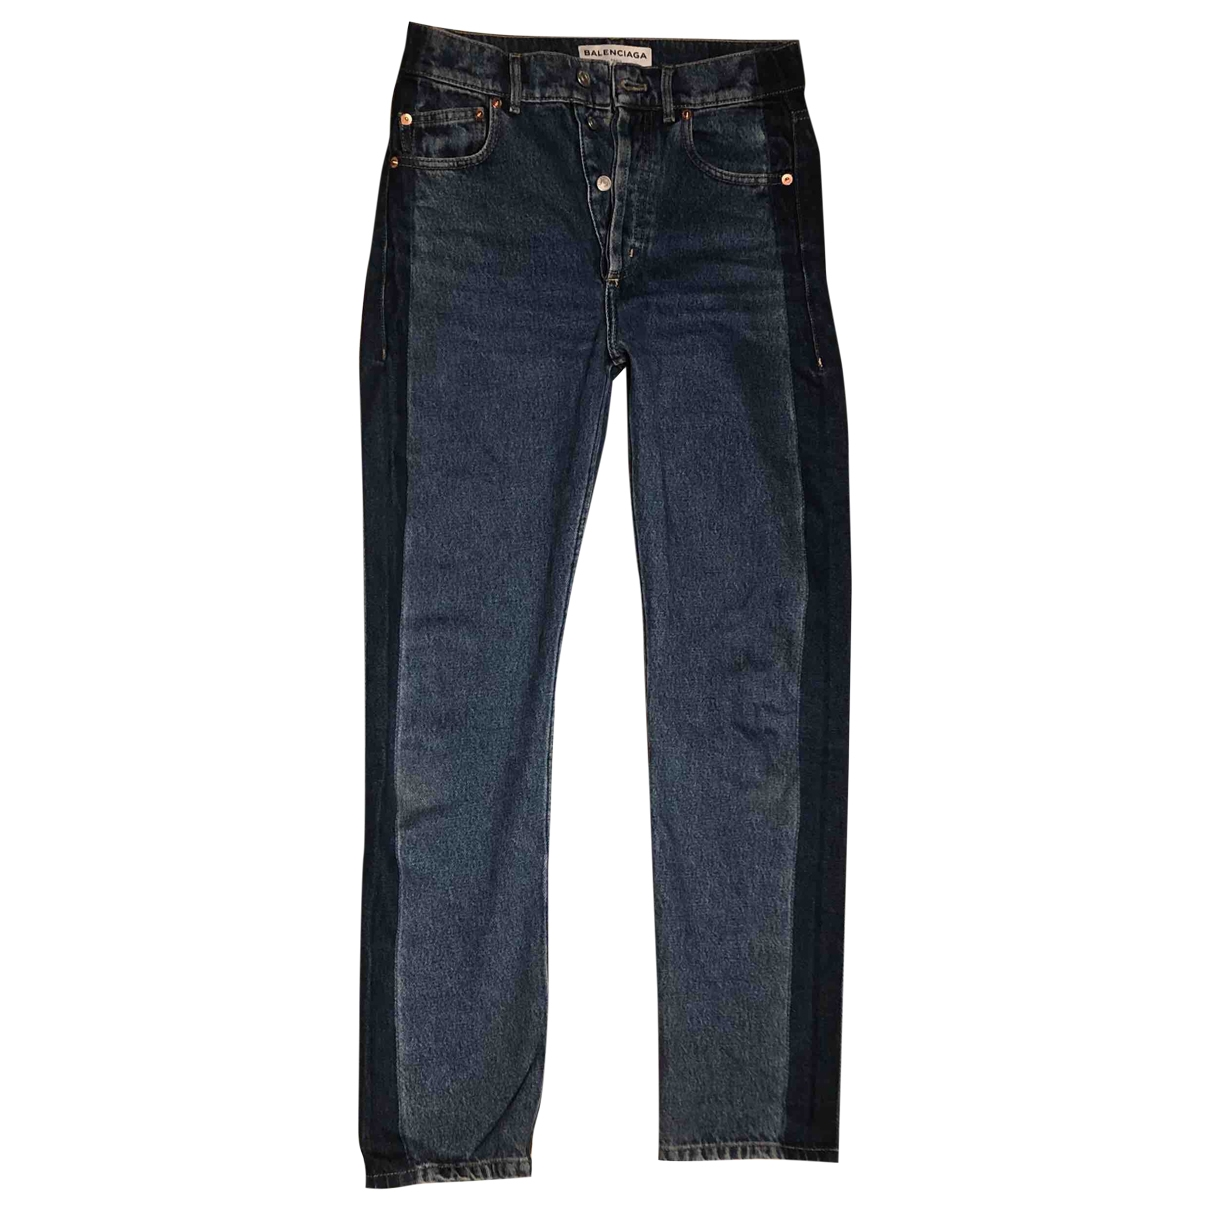 Balenciaga \N Blue Denim - Jeans Jeans for Women 24 US